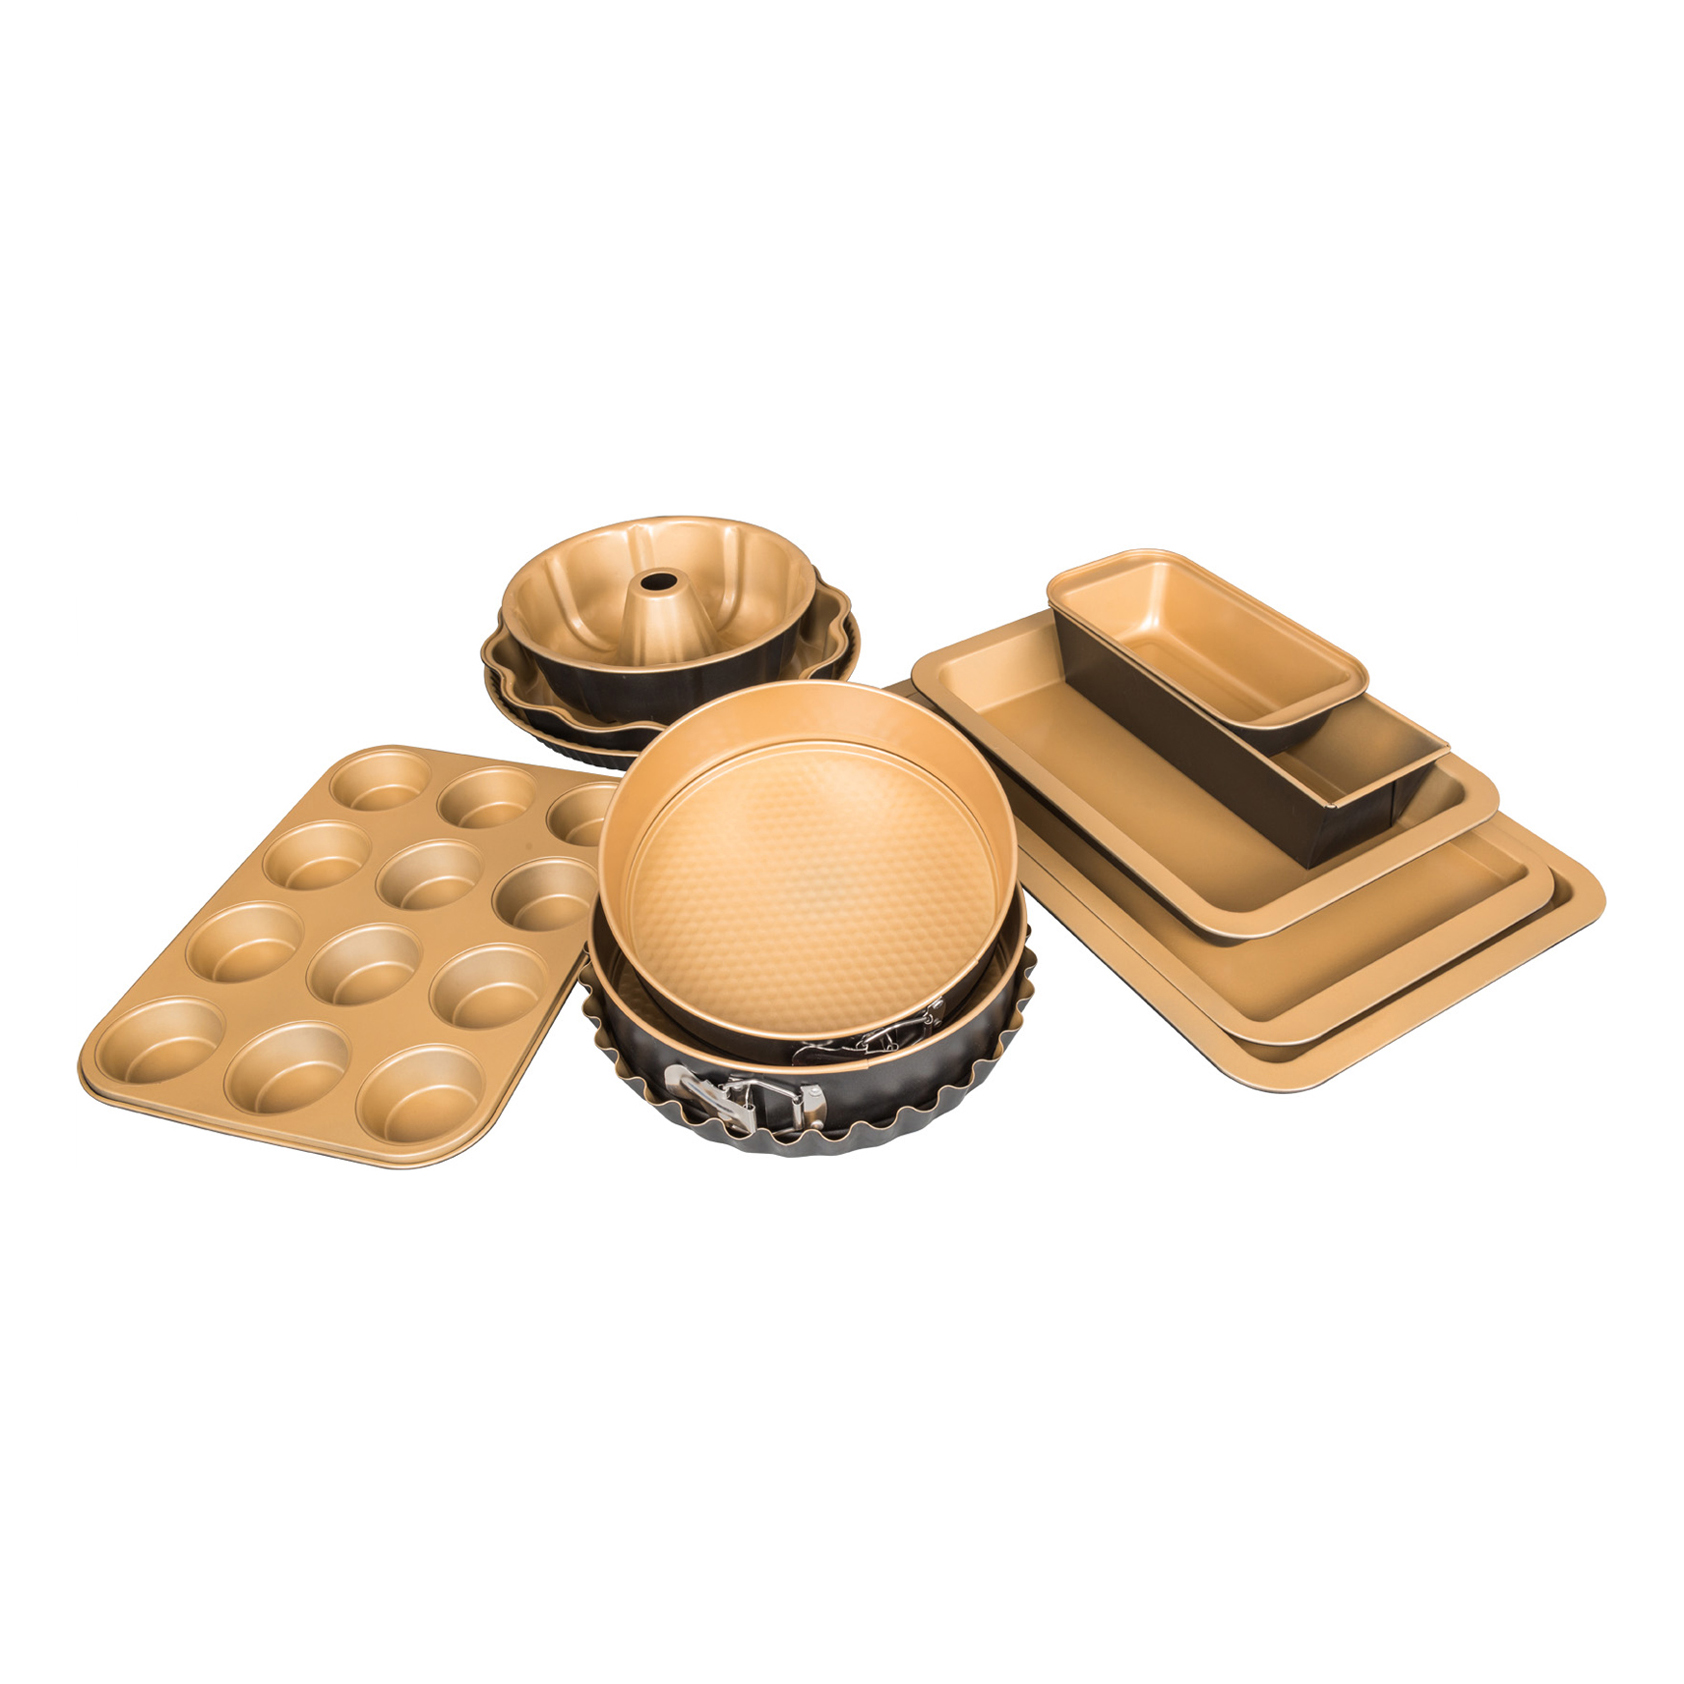 GOLDEN BAKEWARE SERIESCOLOR02